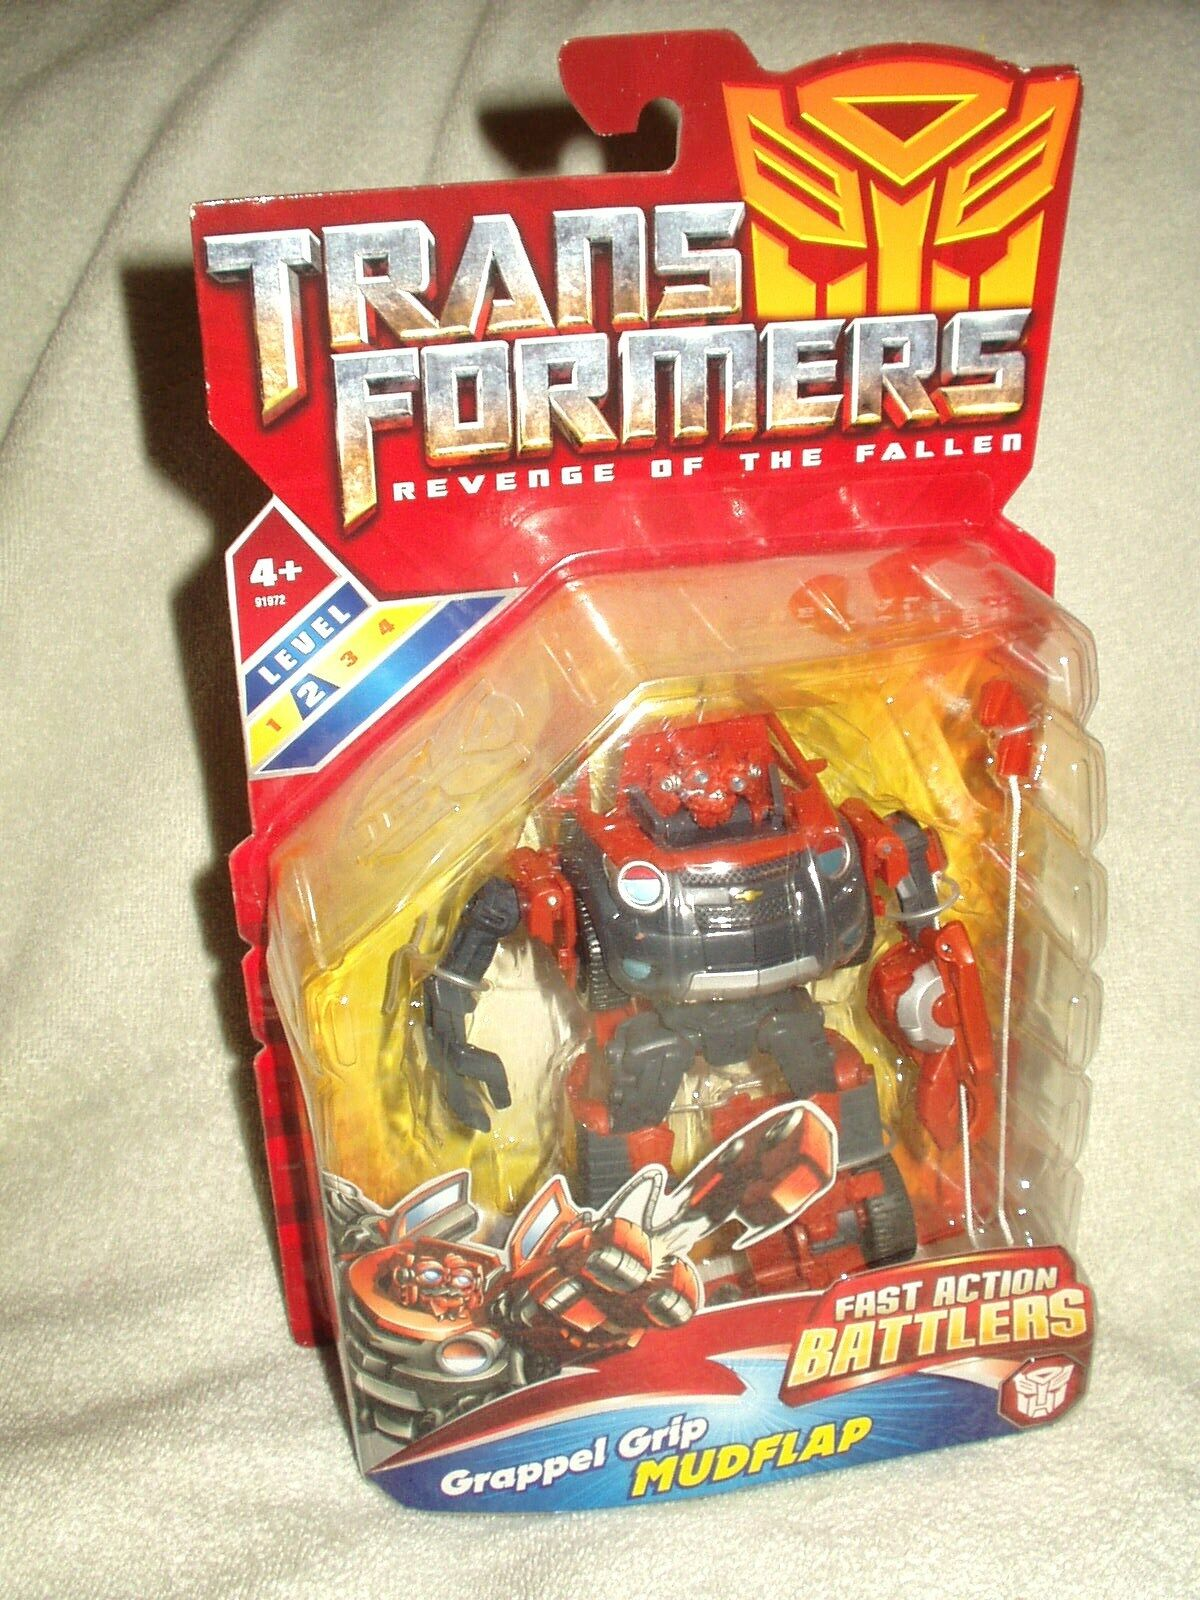 Transformers Action Figure redF Movie Fast Action Battlers Mudflap 6-7 inch